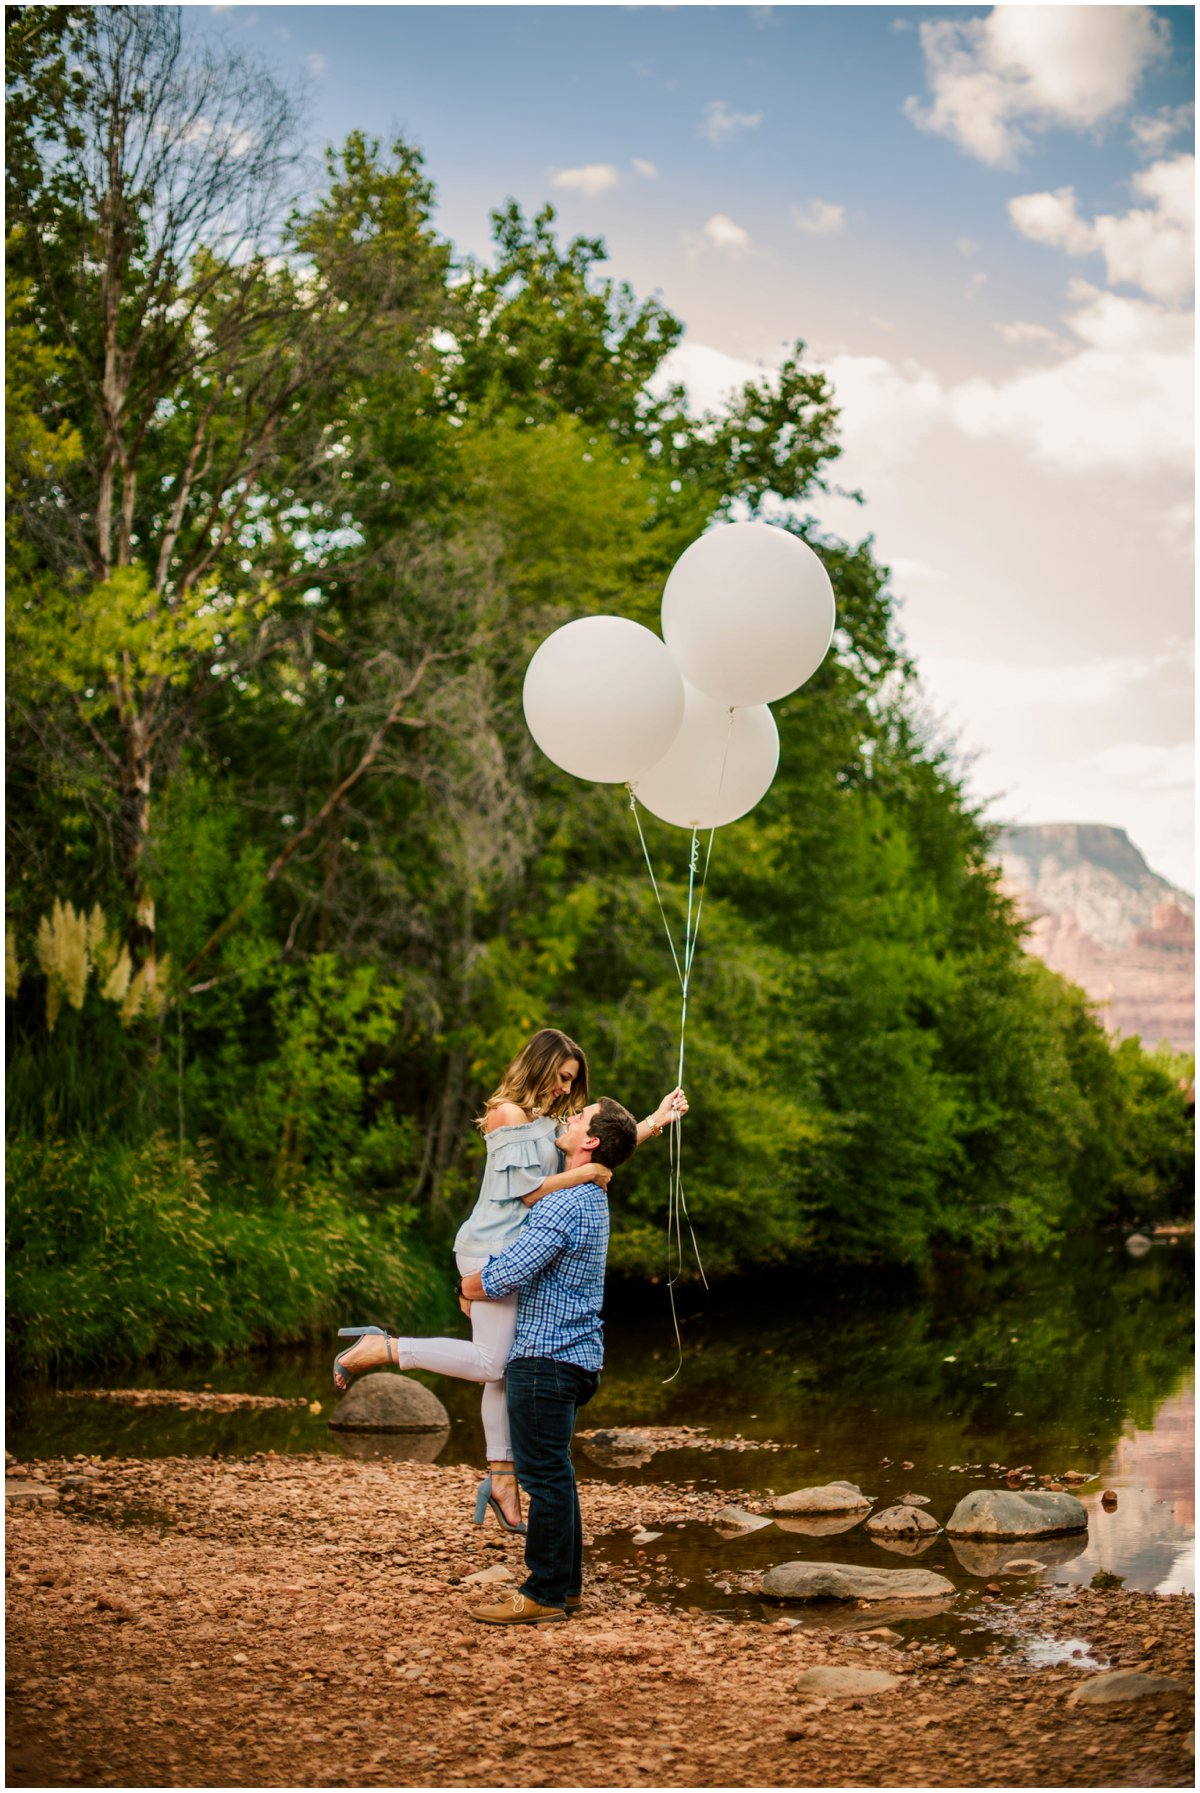 Summer Sedona Engagement Photos with balloons and the Sedona Red Rock Mountains in the background.